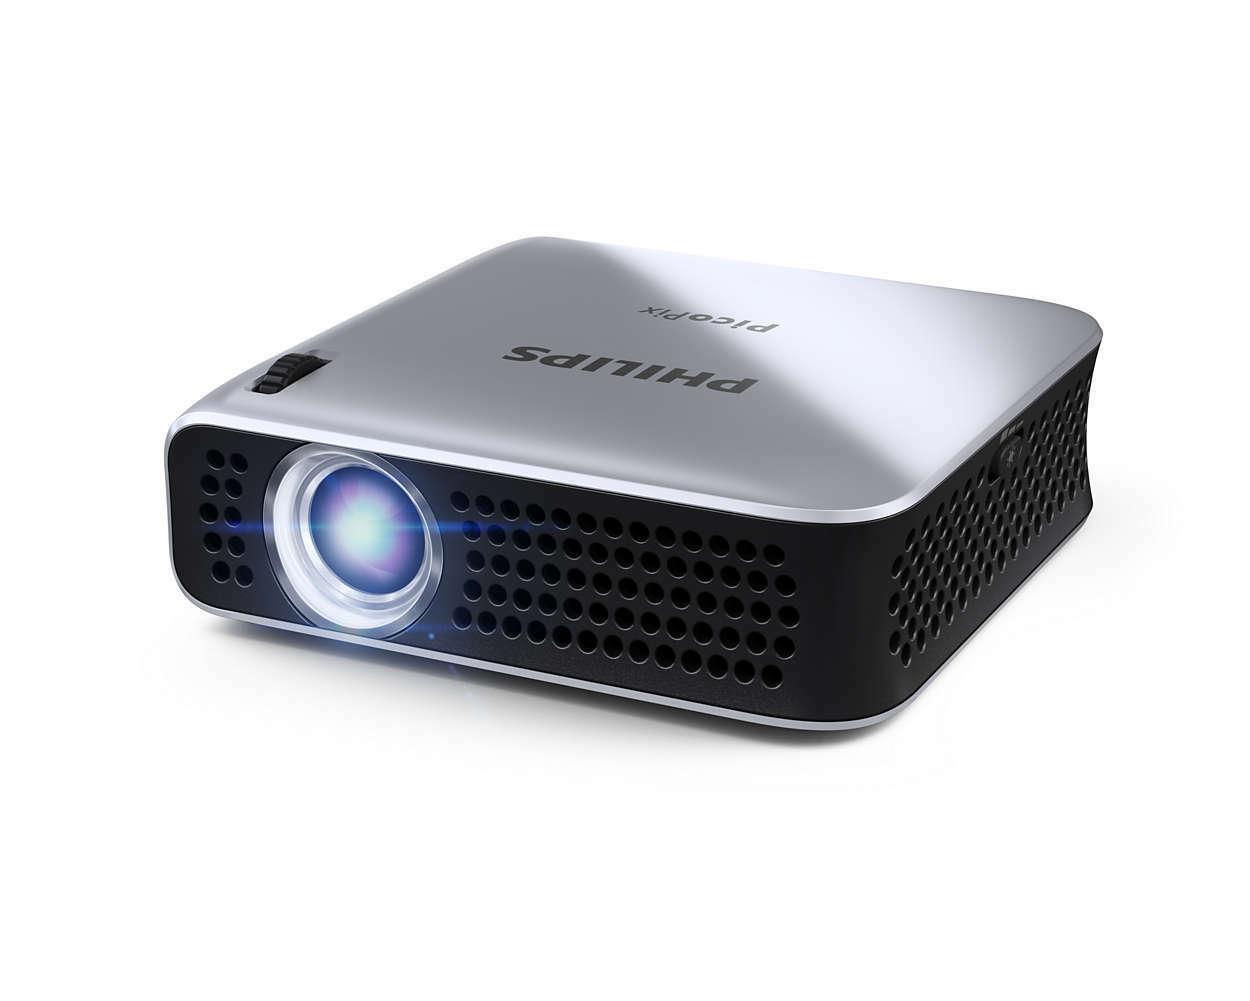 Philips pico ppx4010 hdmi portable pocket projector for Hdmi pocket projector